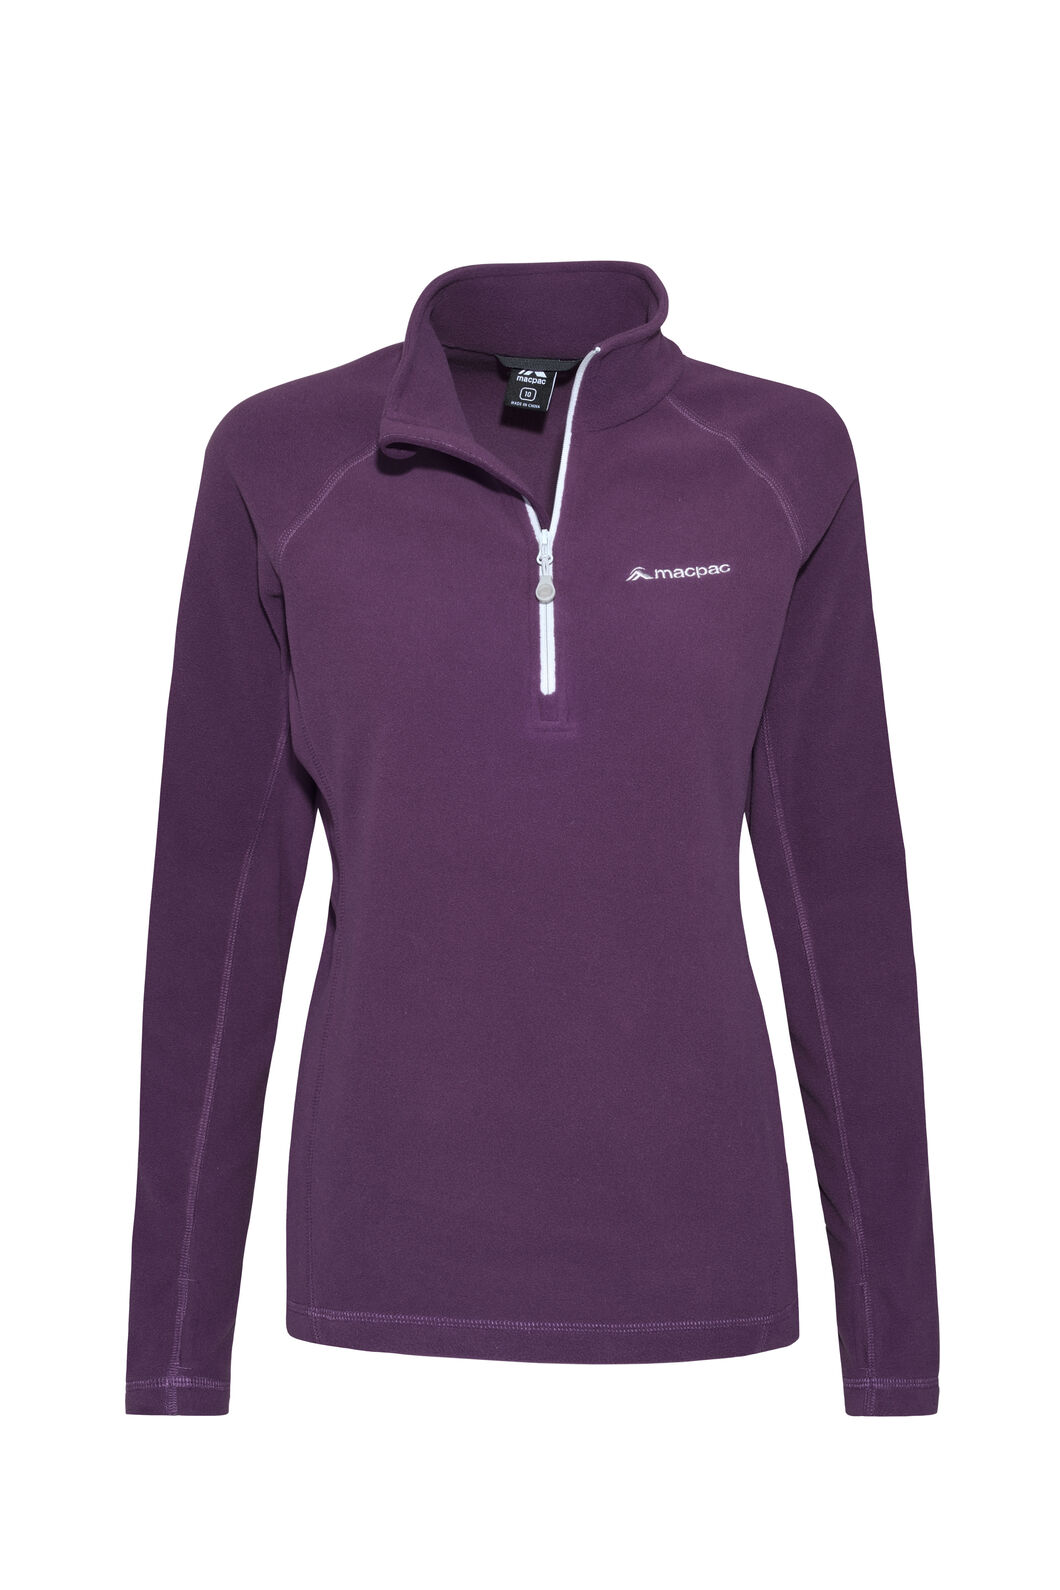 Macpac Tui Polartec® Micro Fleece® Pullover — Women's, Blackberry Wine, hi-res